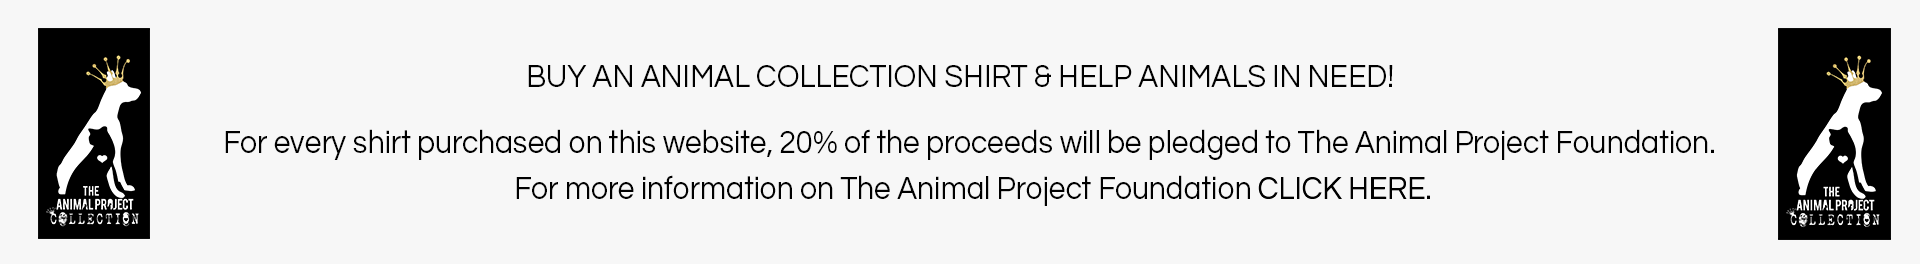 The Animal Project Foundation